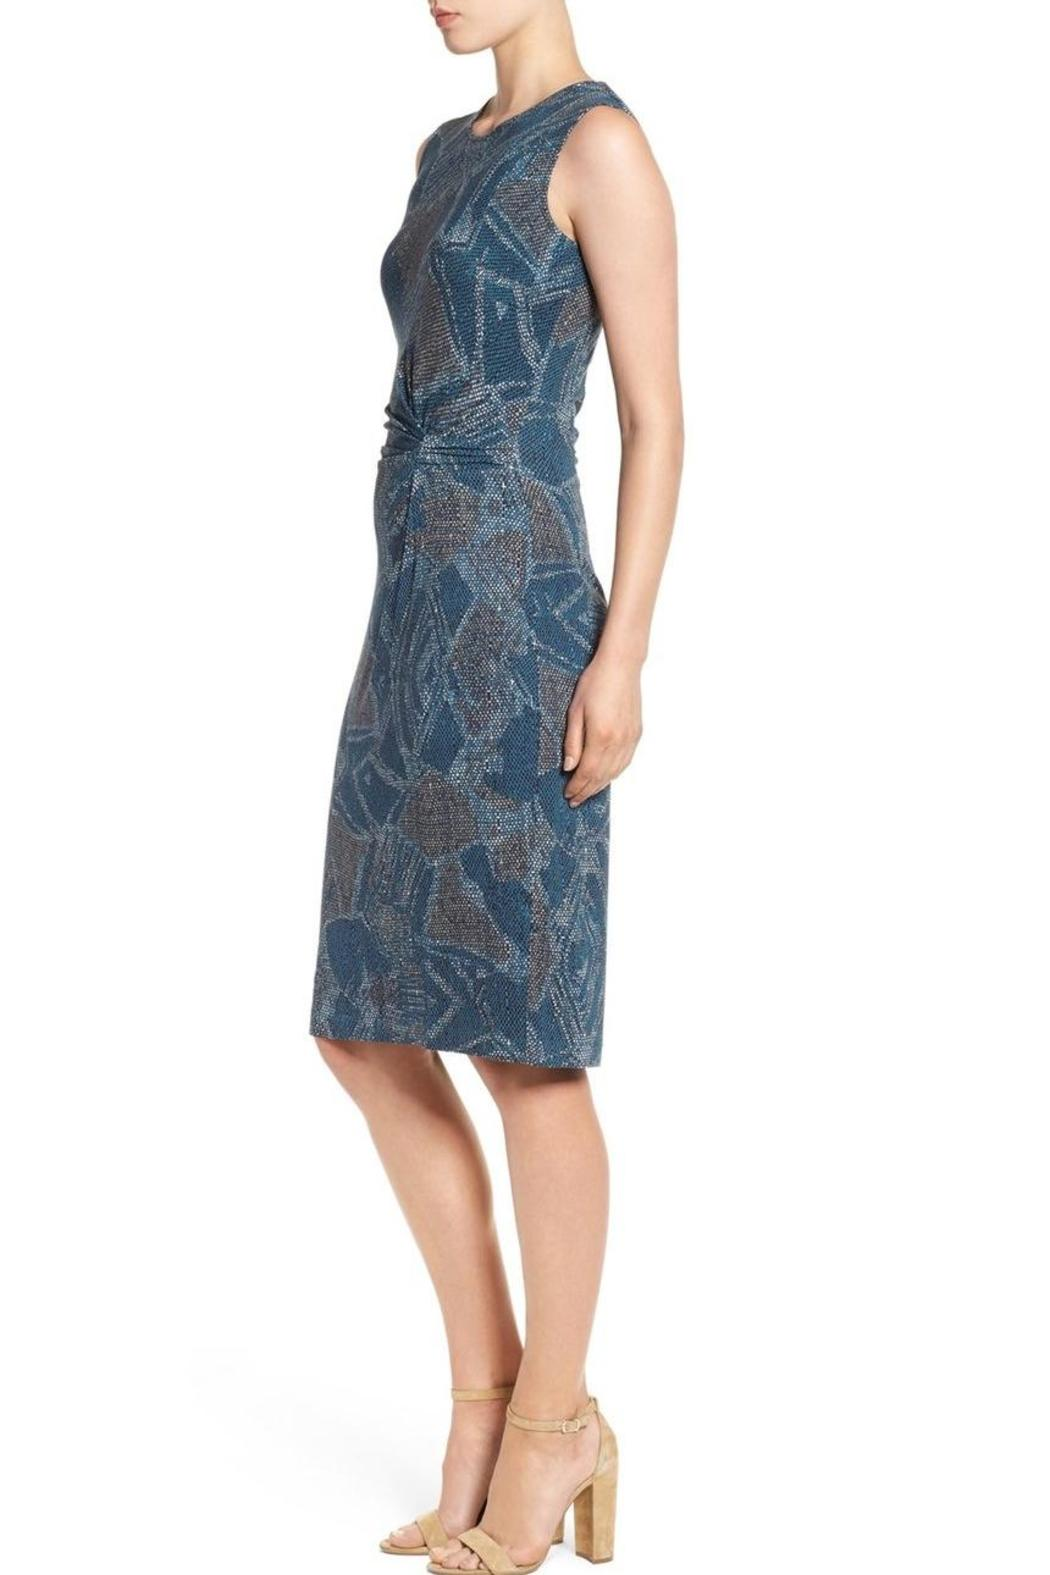 Nic + Zoe Blue Twist Dress - Back Cropped Image